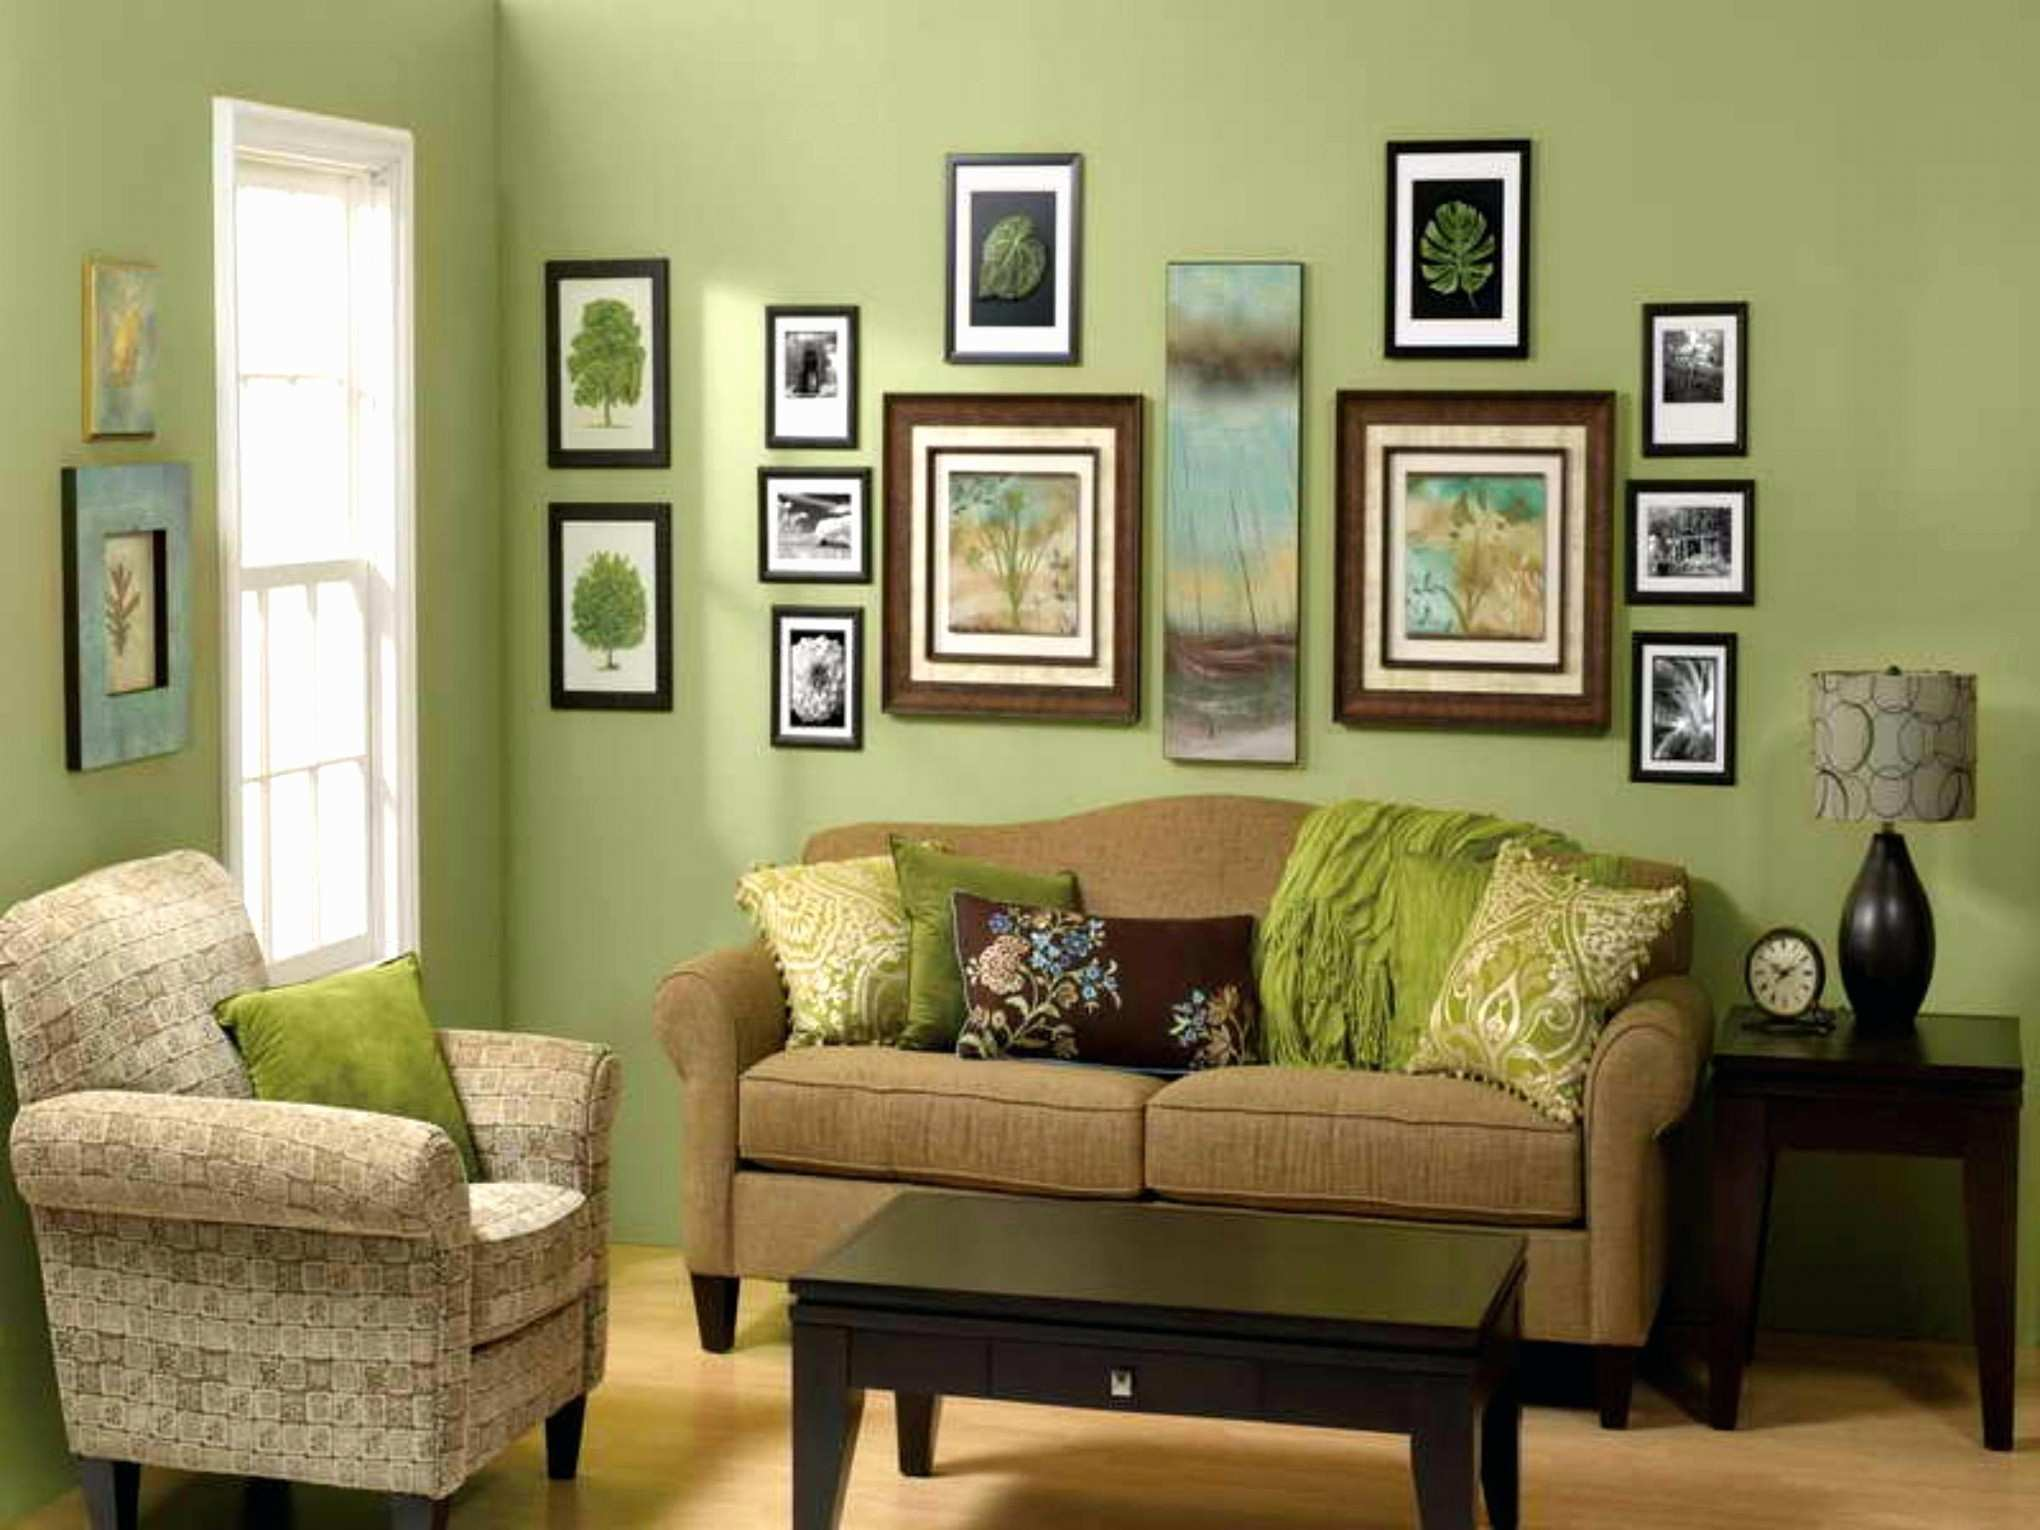 Home Designs Living Room Wall Decor Ideas Fresh Wall Decals For